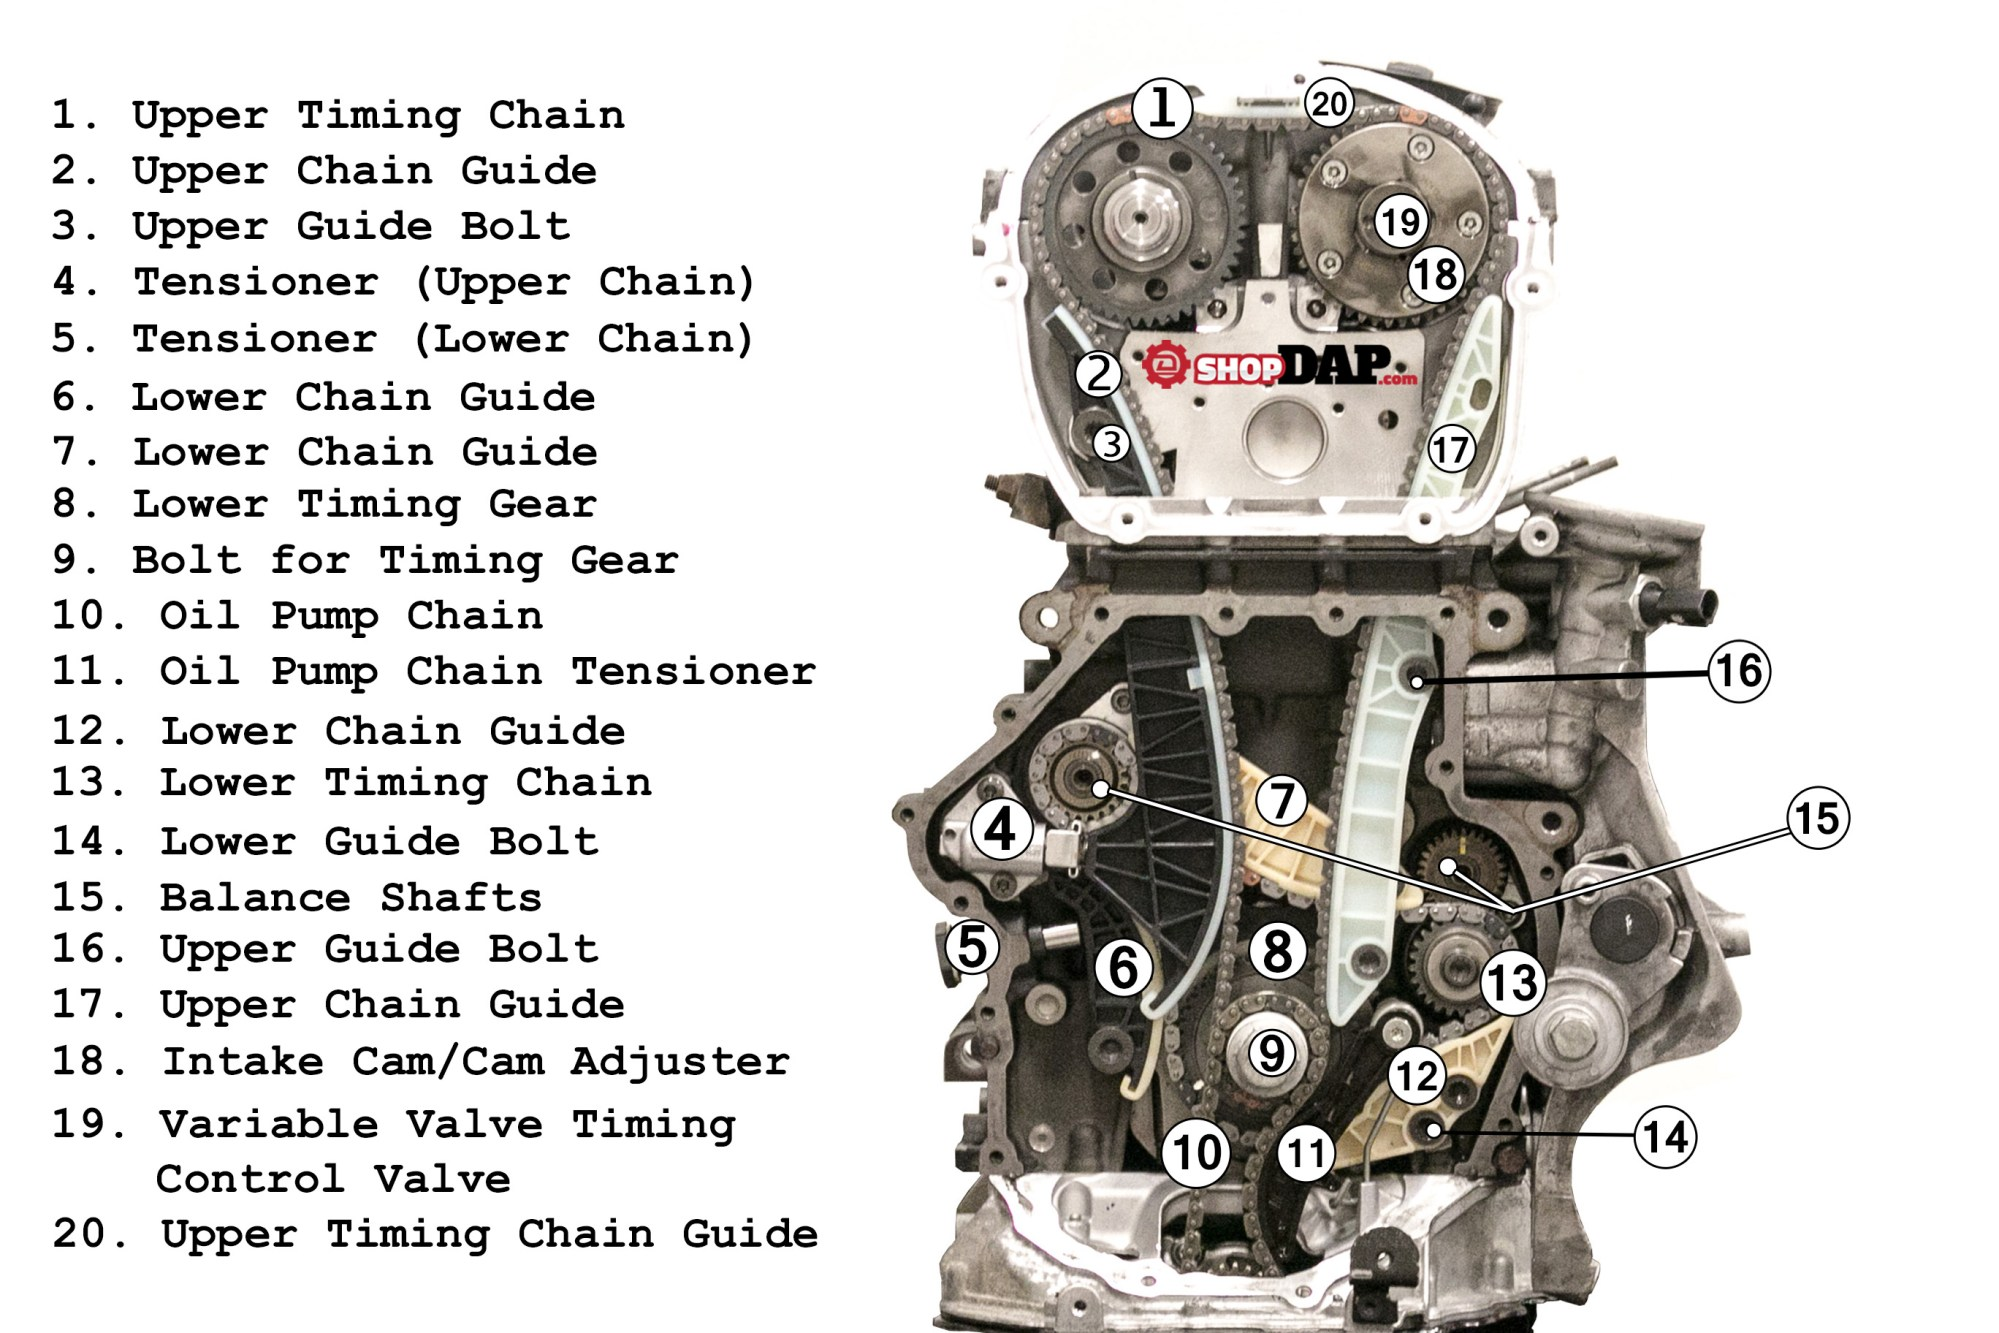 hight resolution of 2 0t tsi timing chain component diagram for vw and audi articles2 0t tsi timing chain